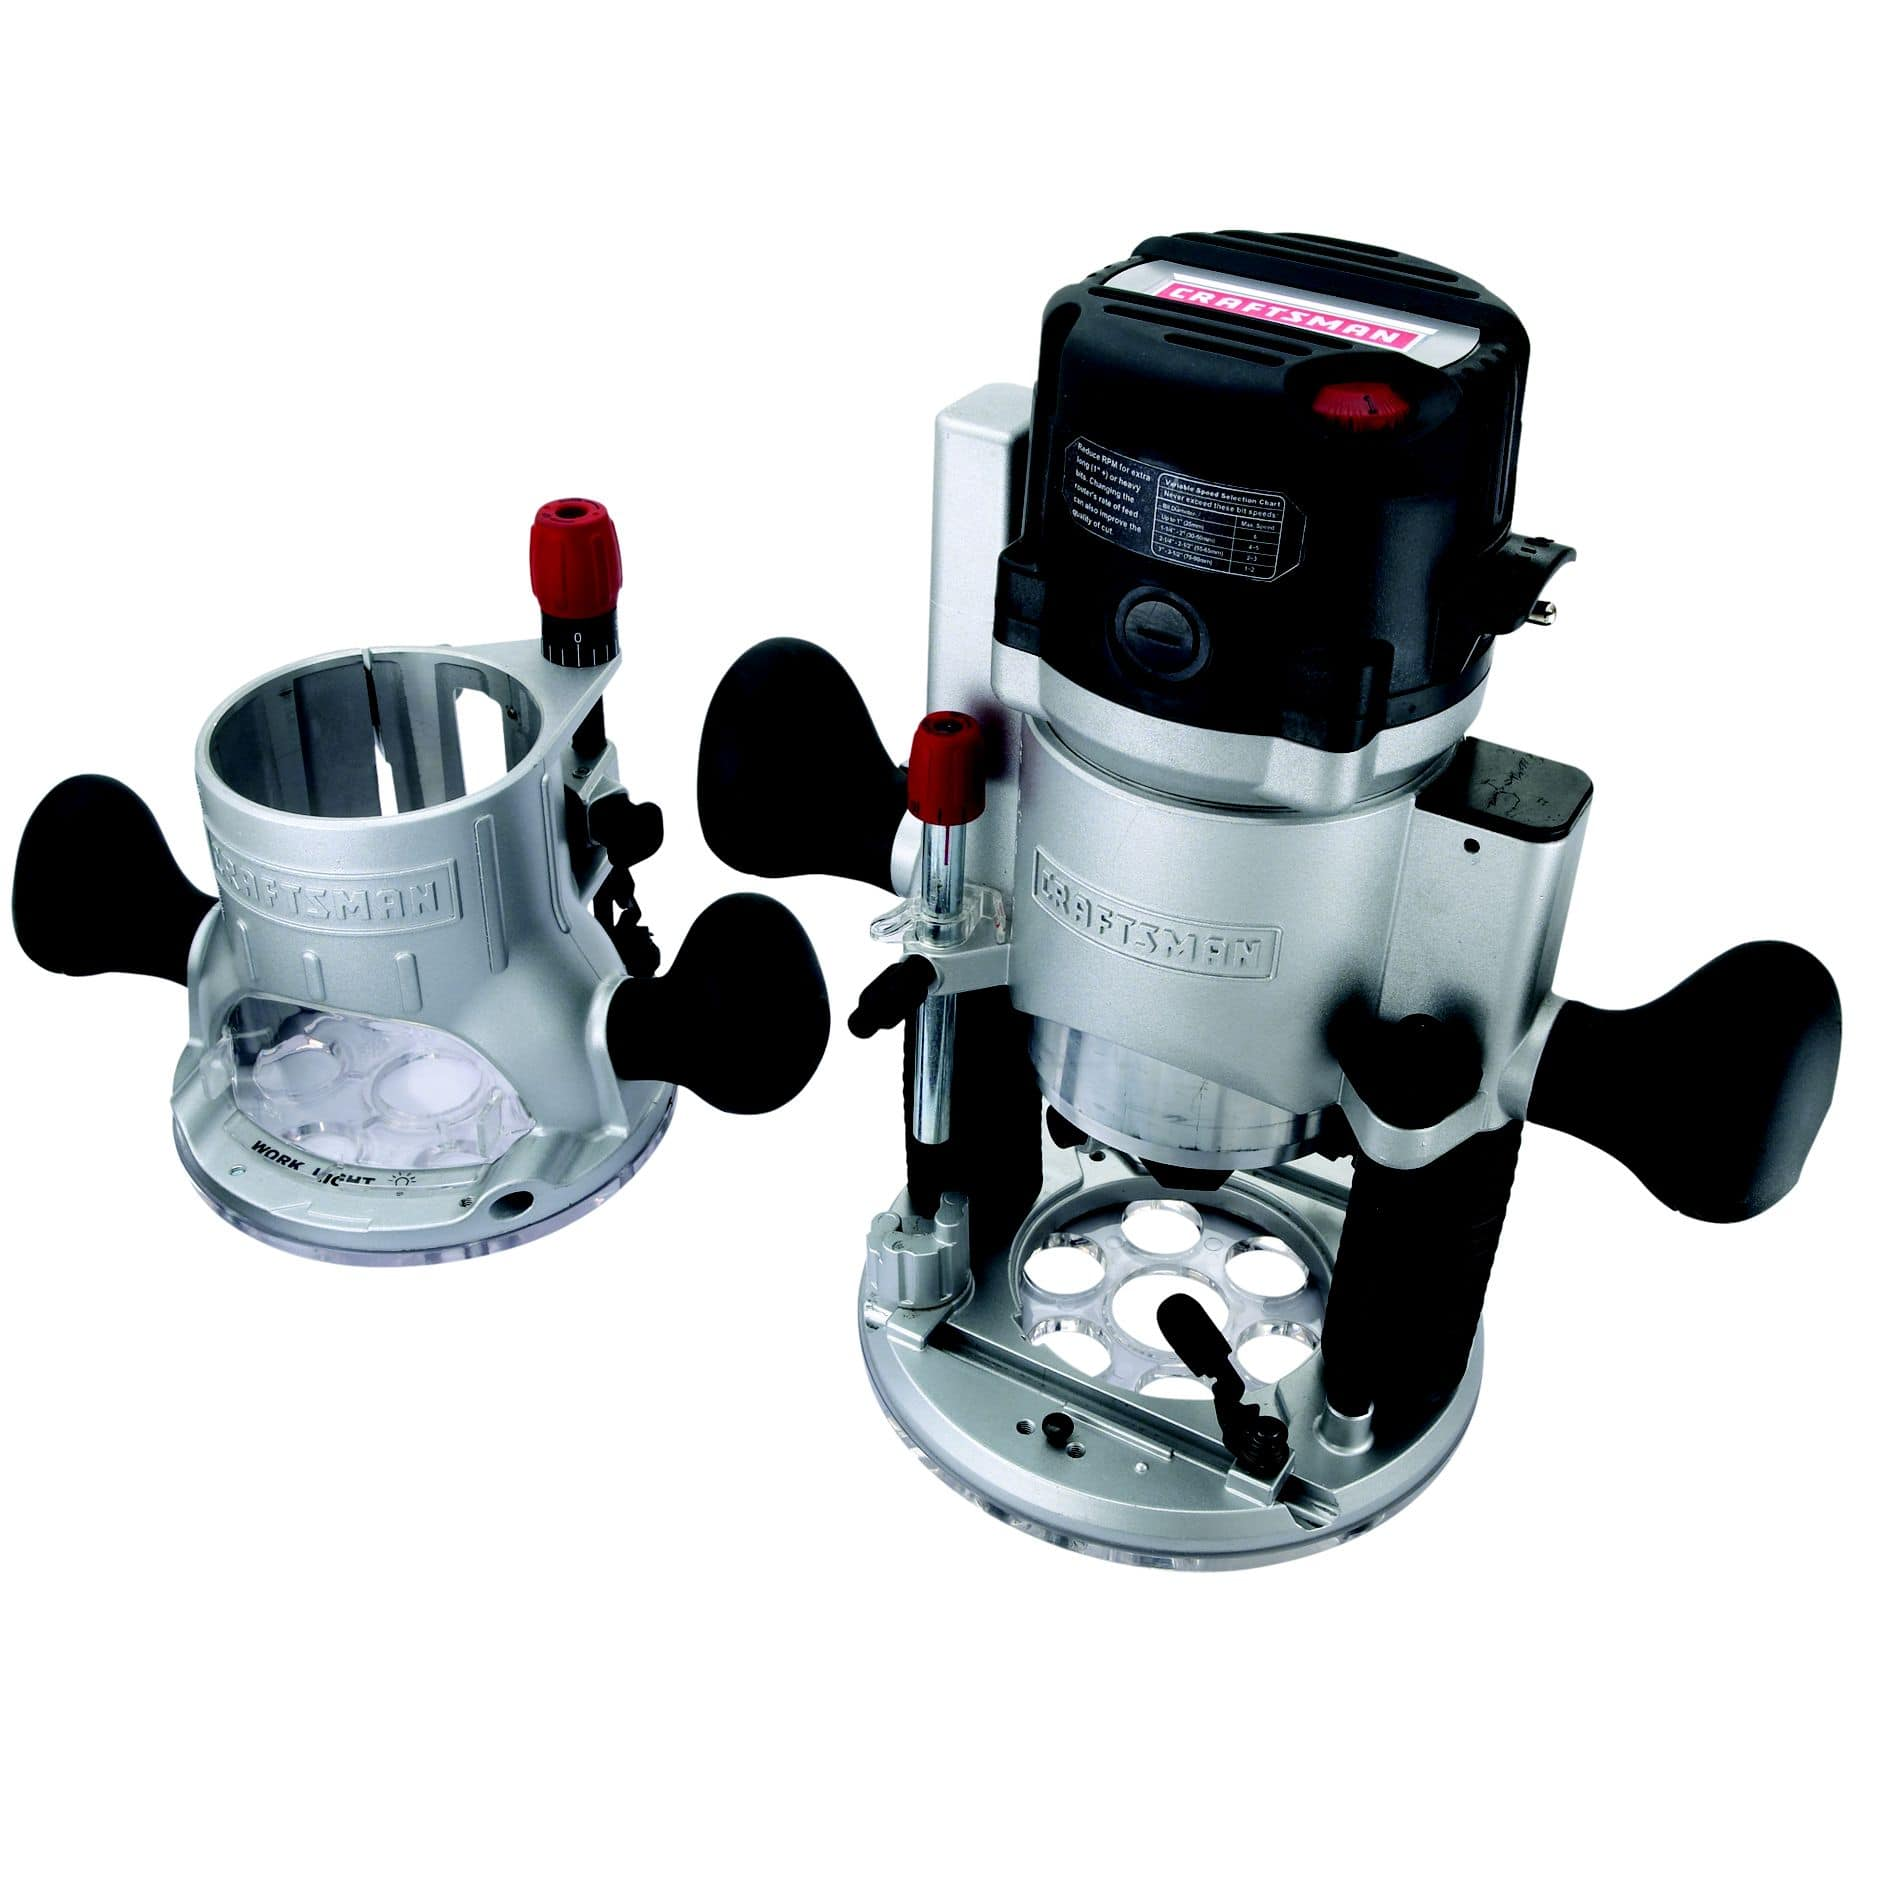 Craftsman 12-amp, 2-hp Fixed/Plunge Base Router $97.49 + $34.88 SYW (net $62.61) Reg $125 points roll